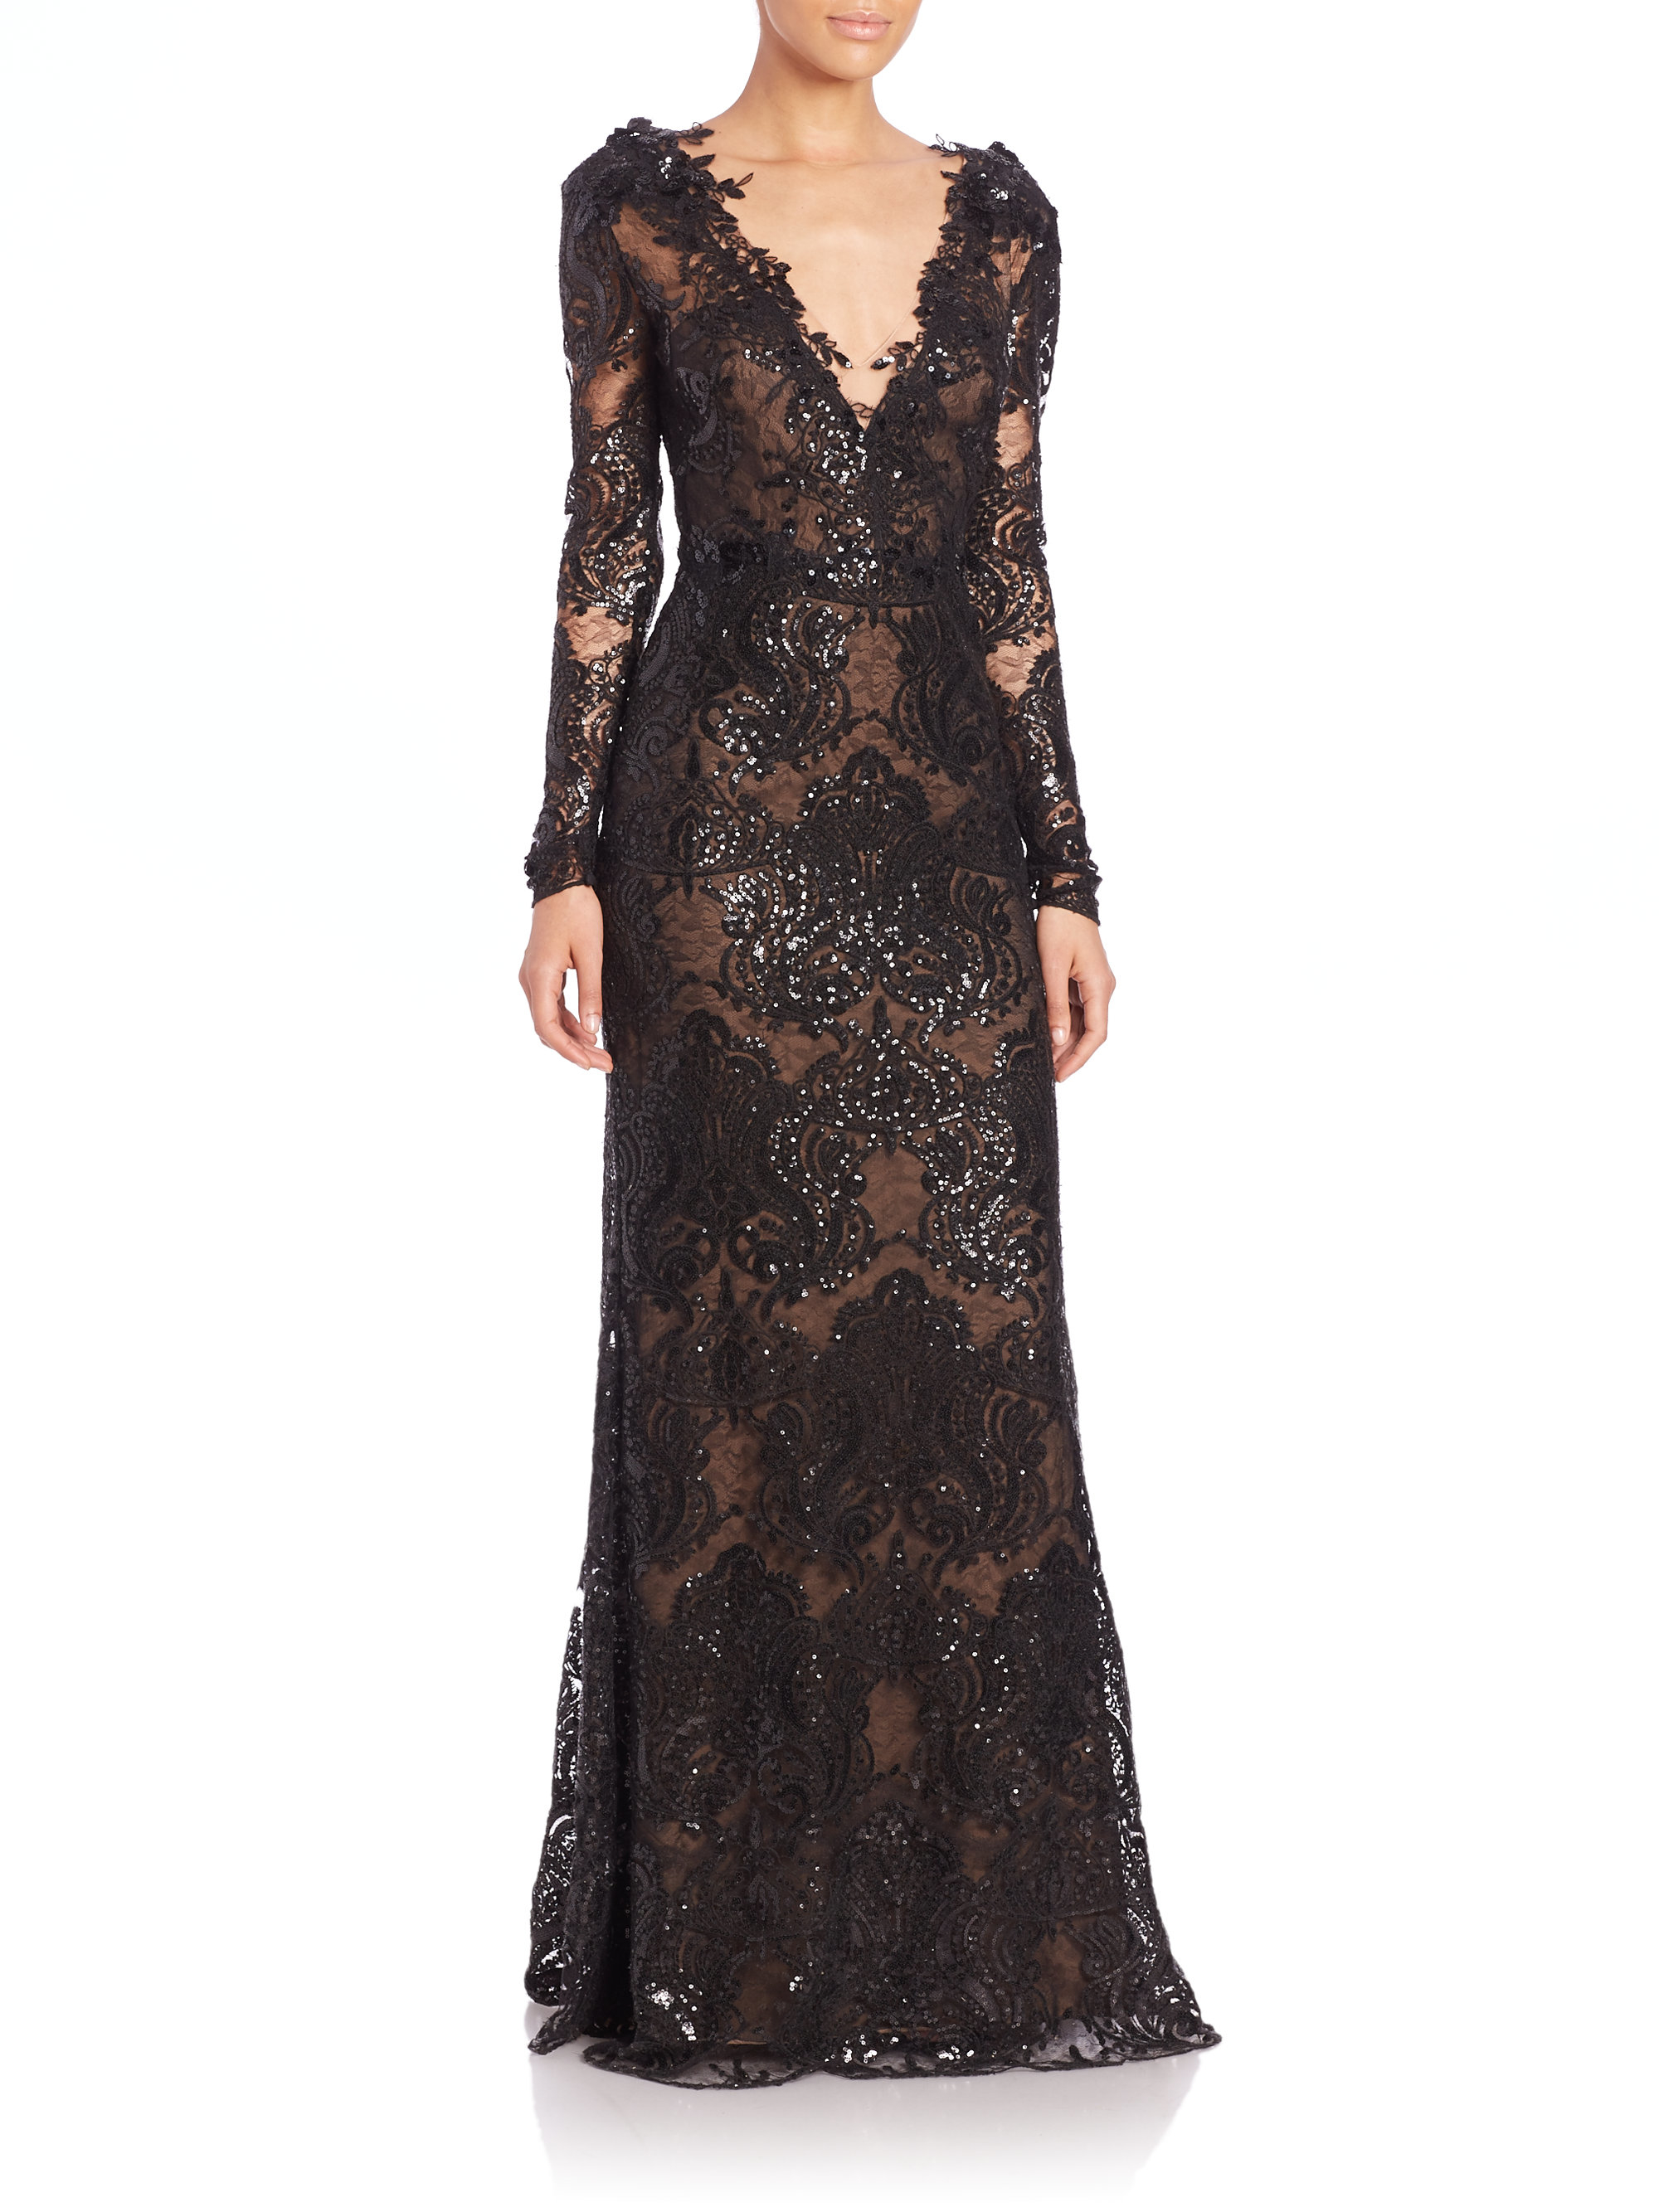 Notte by marchesa Sequined Lace Gown in Black